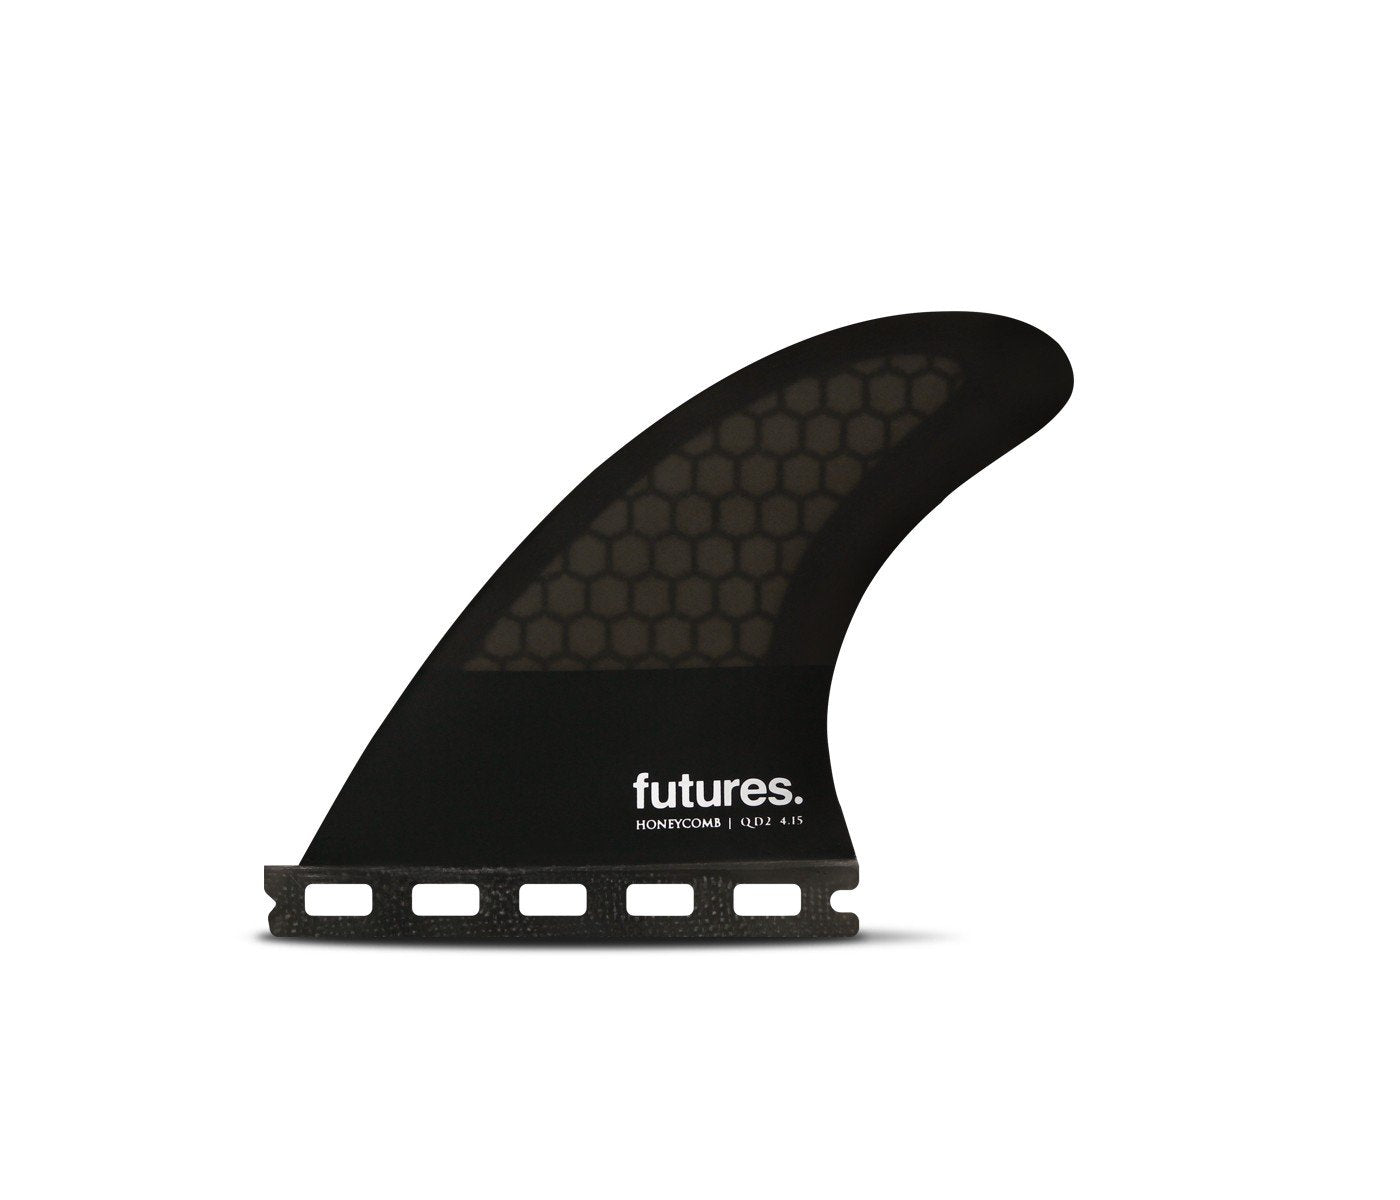 "Futures QD2 4.15"" Symmetrical - Board Store FuturesFins"